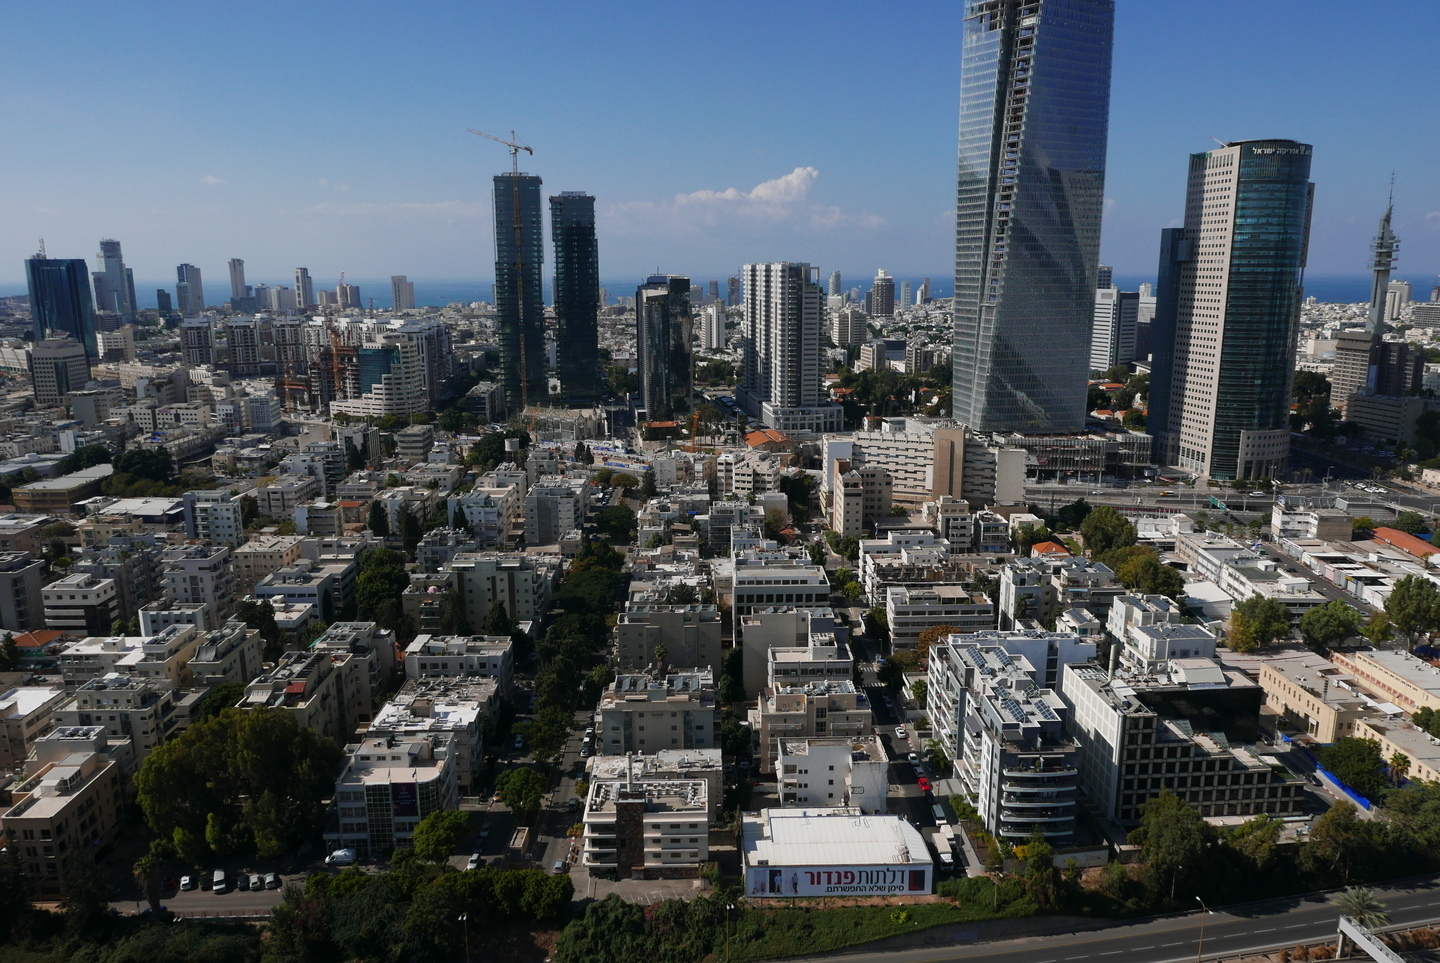 View from the Tel Aviv office of Google